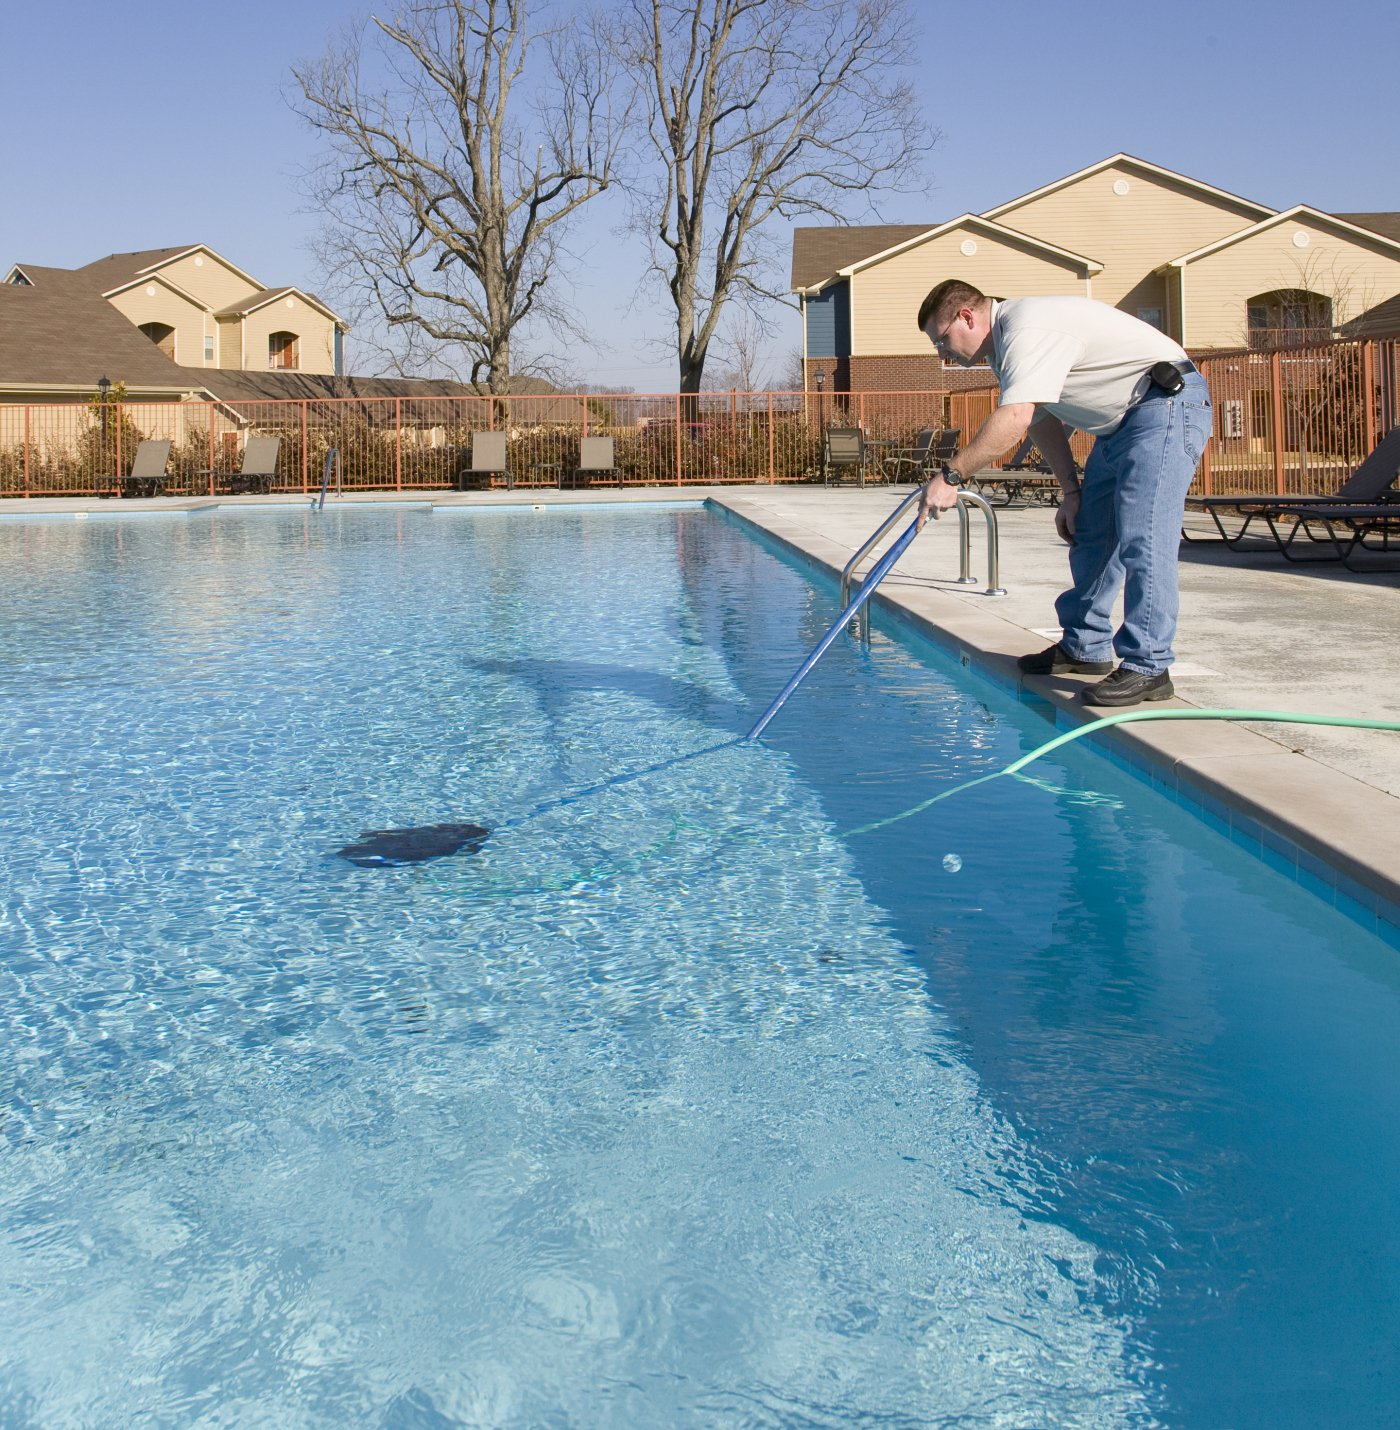 Our experts can provide you with a full pool cleaning service, so give us a  call today!